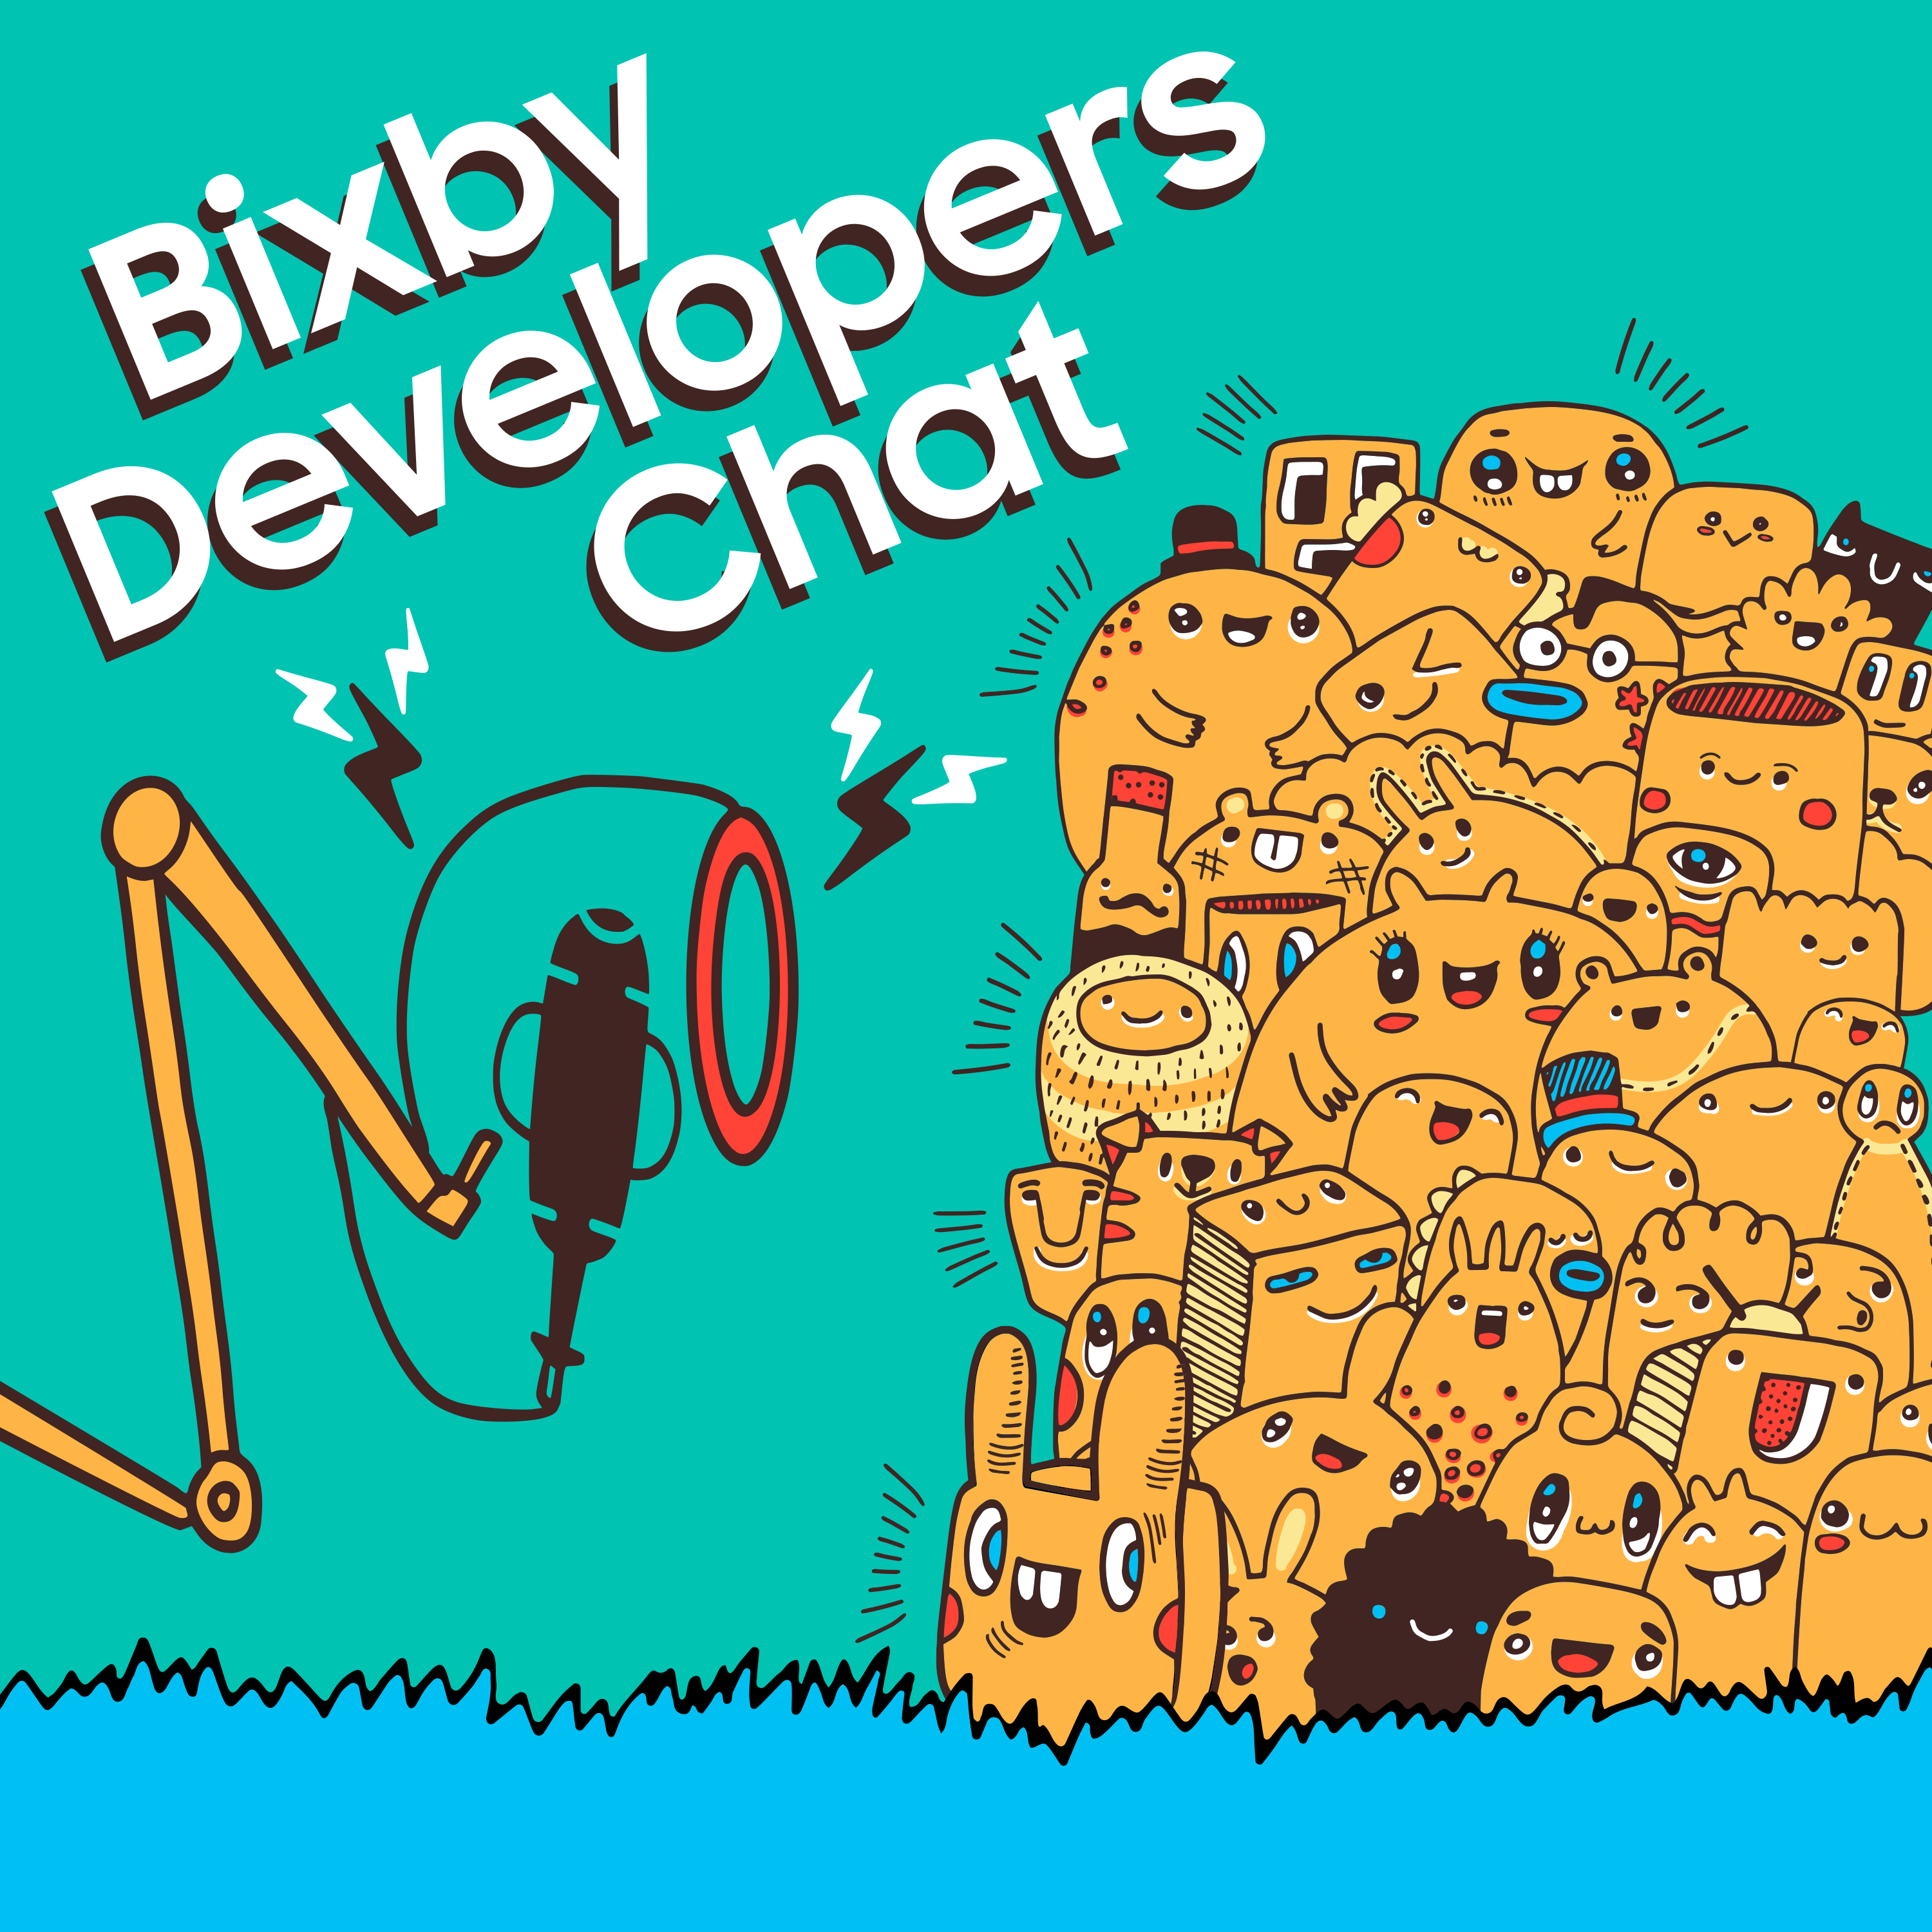 Bixby Developers Chat